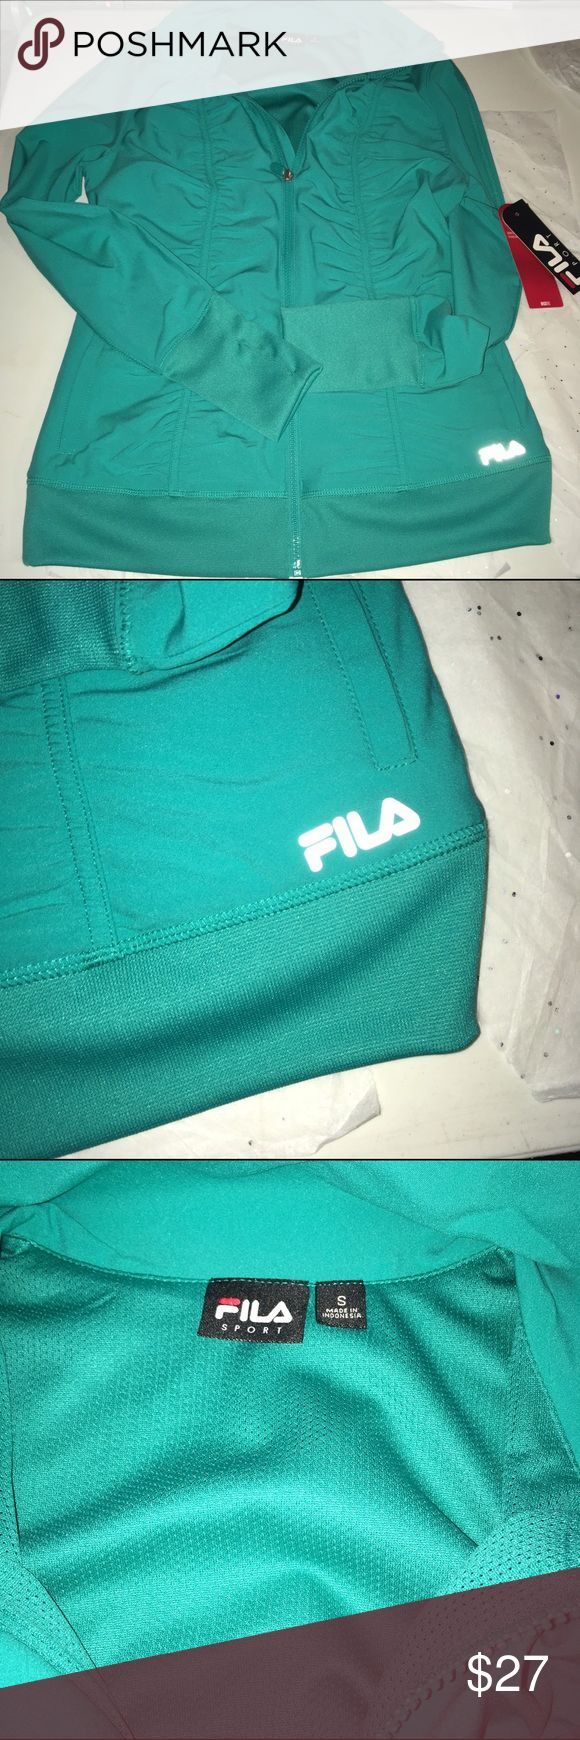 Fila jacket NWT size small Fila jacket NWT size small Fila Jackets & Coats